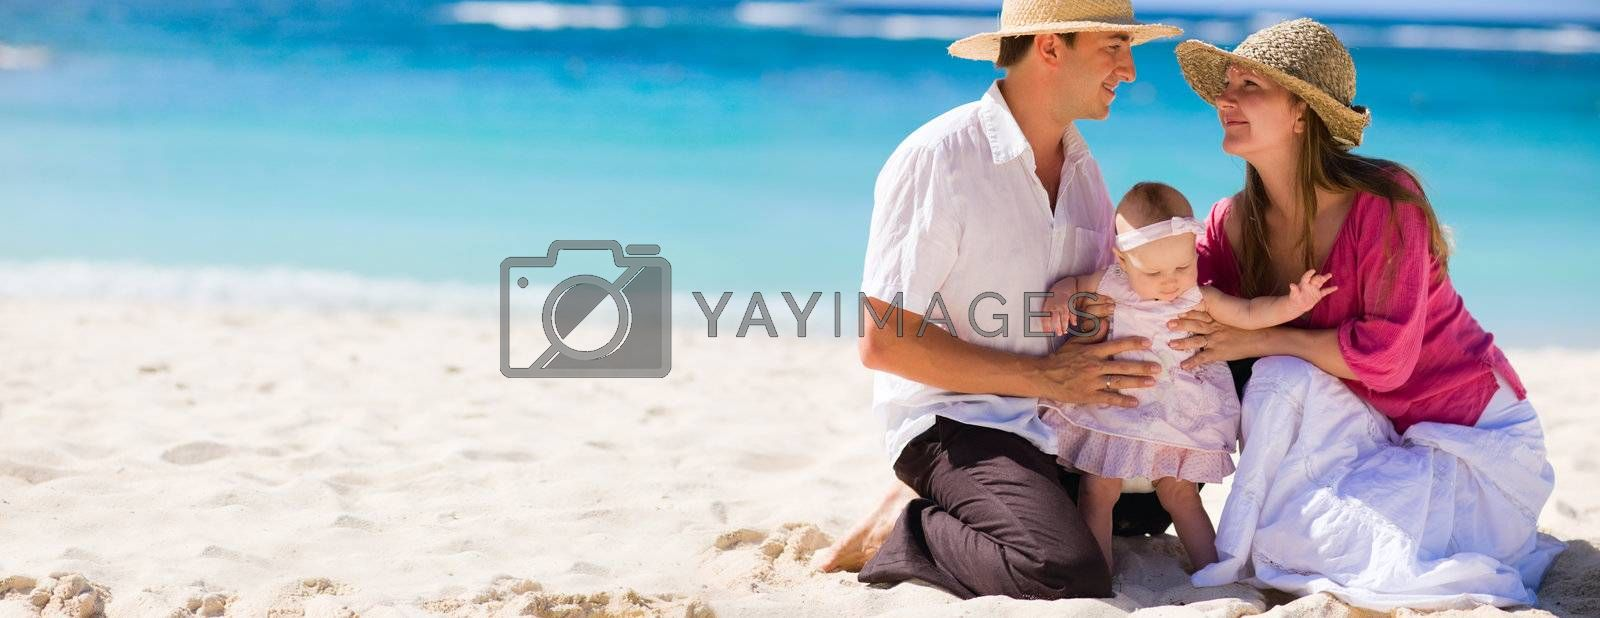 Family vacation. Panoramic photo of young family of three on white sand tropical beach